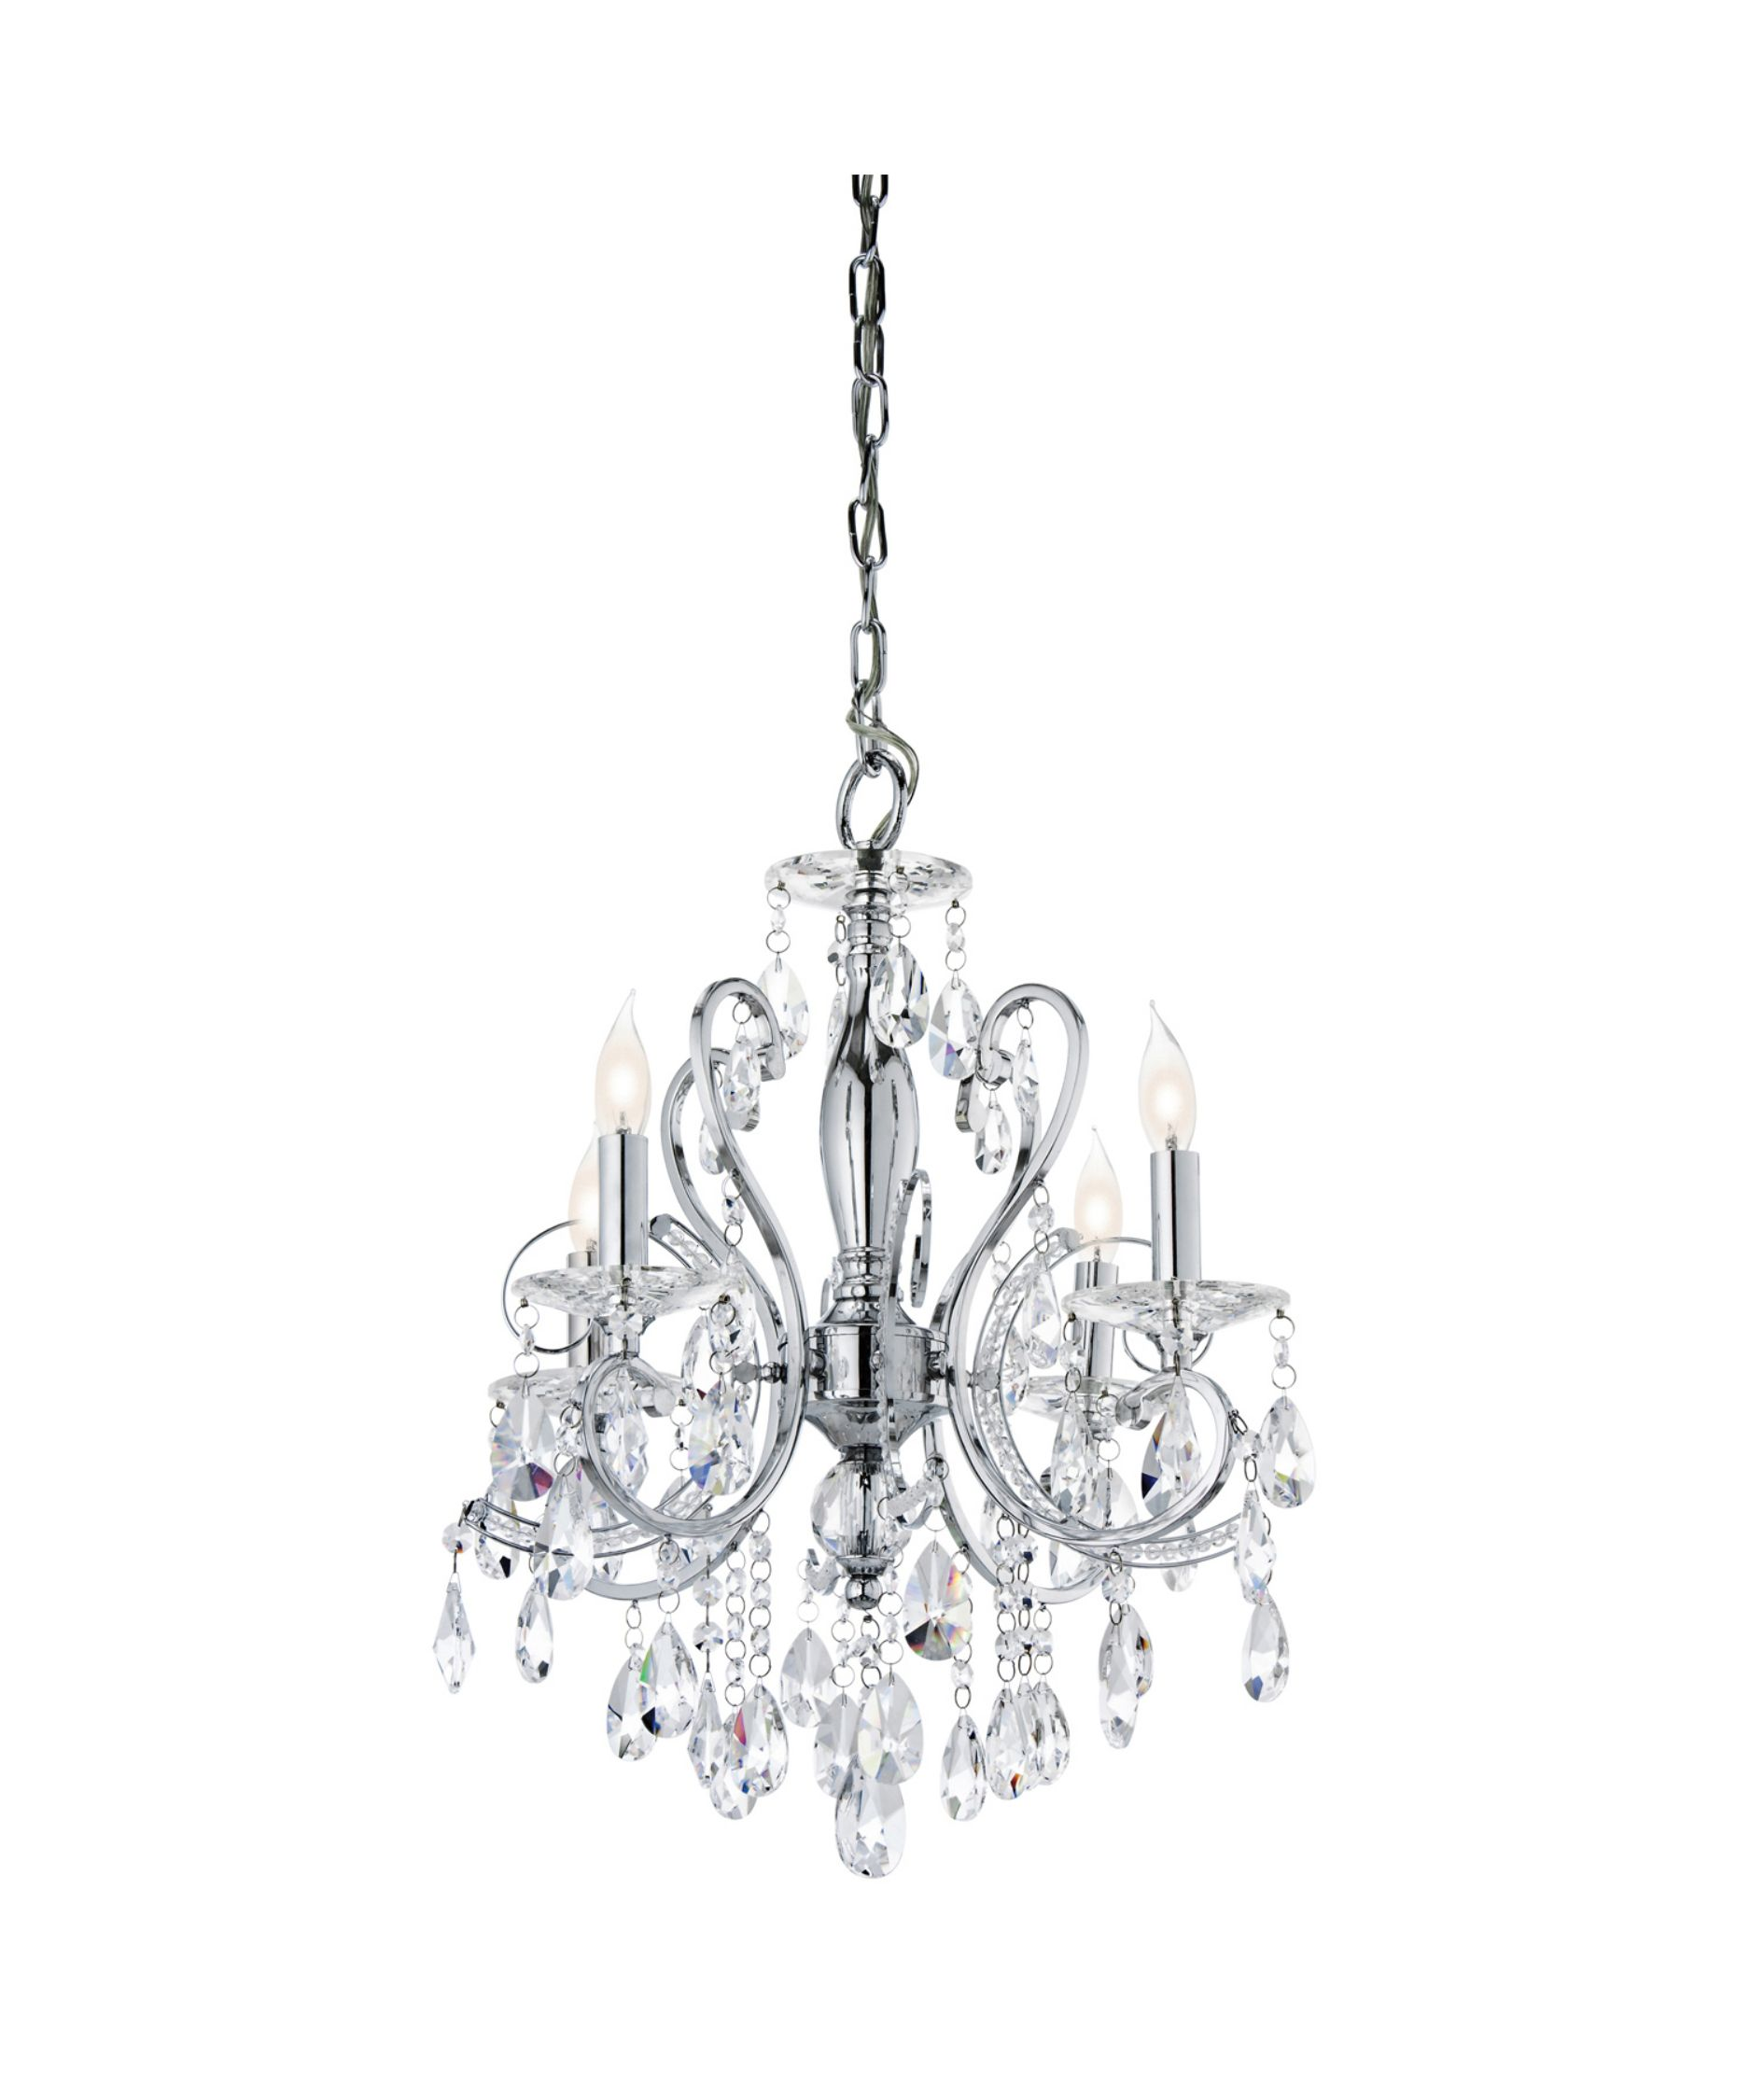 Small Simple Chandelier Nice Mini Chandelier For Bathroom 7 Mini Crystal Chandelier